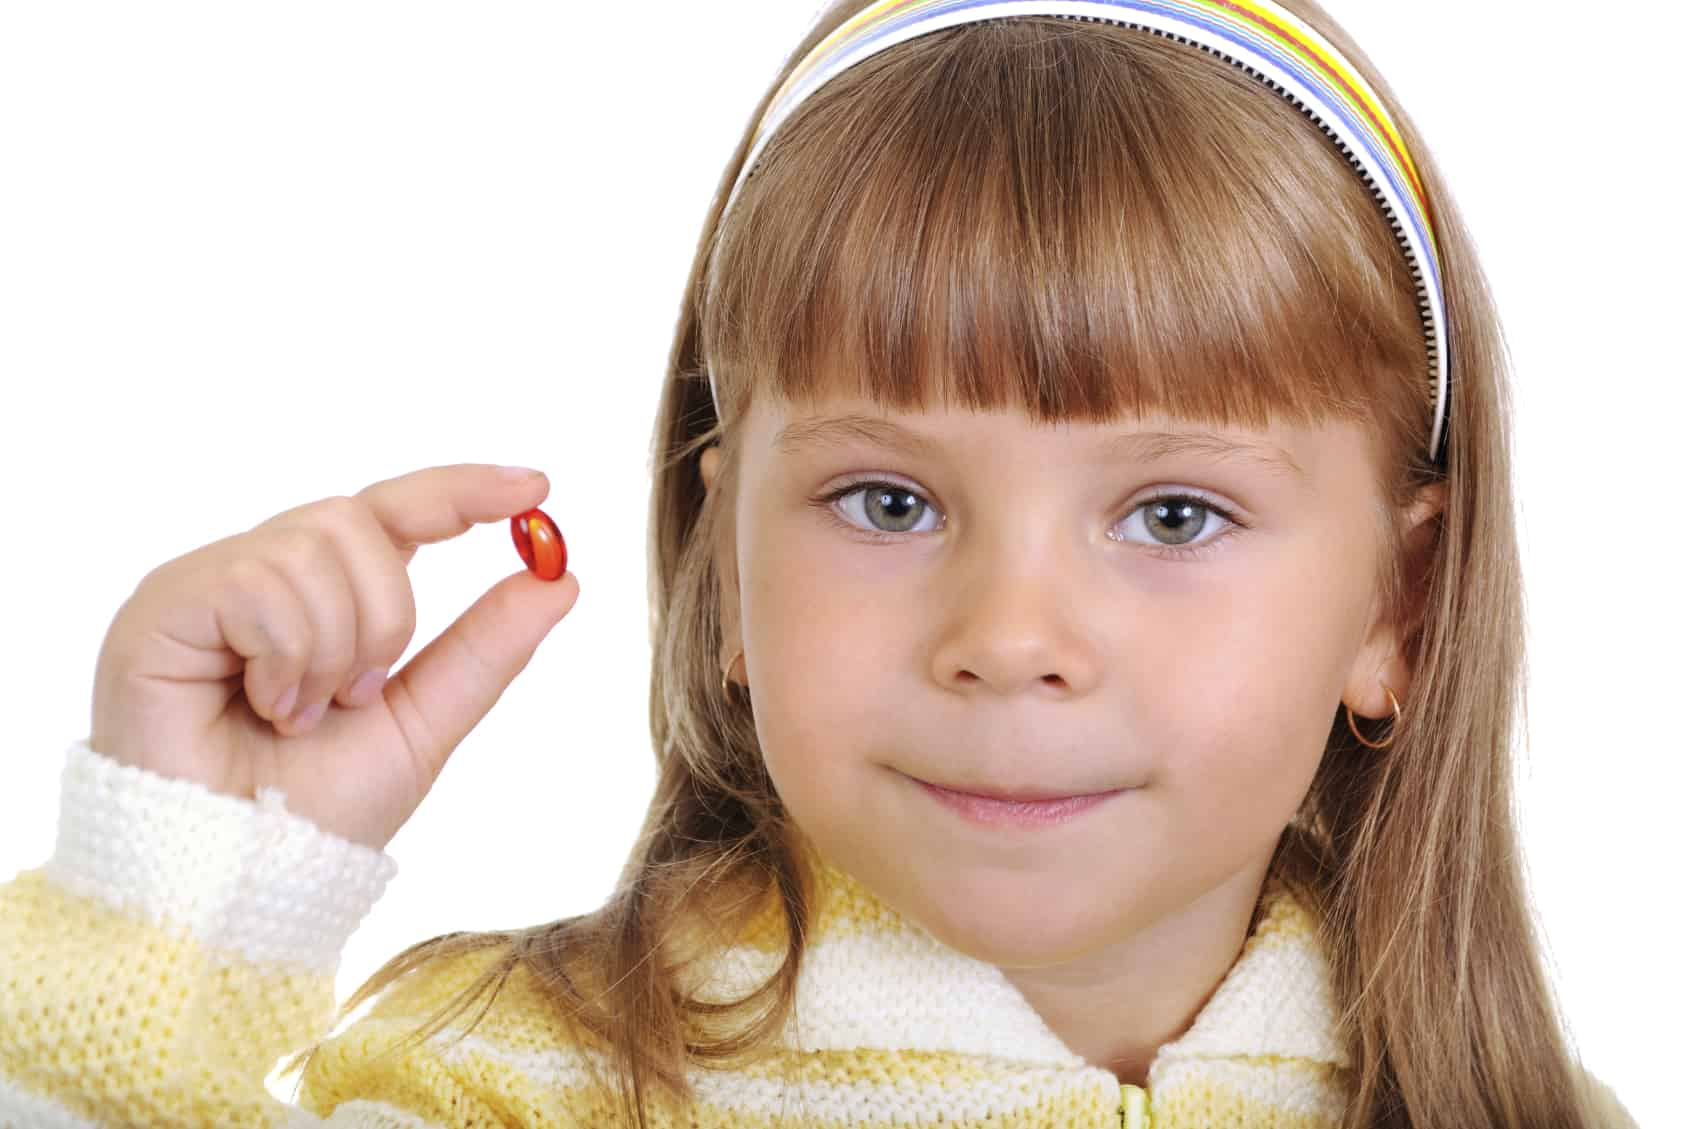 The smiling girl holds a medicinal capsule in a hand